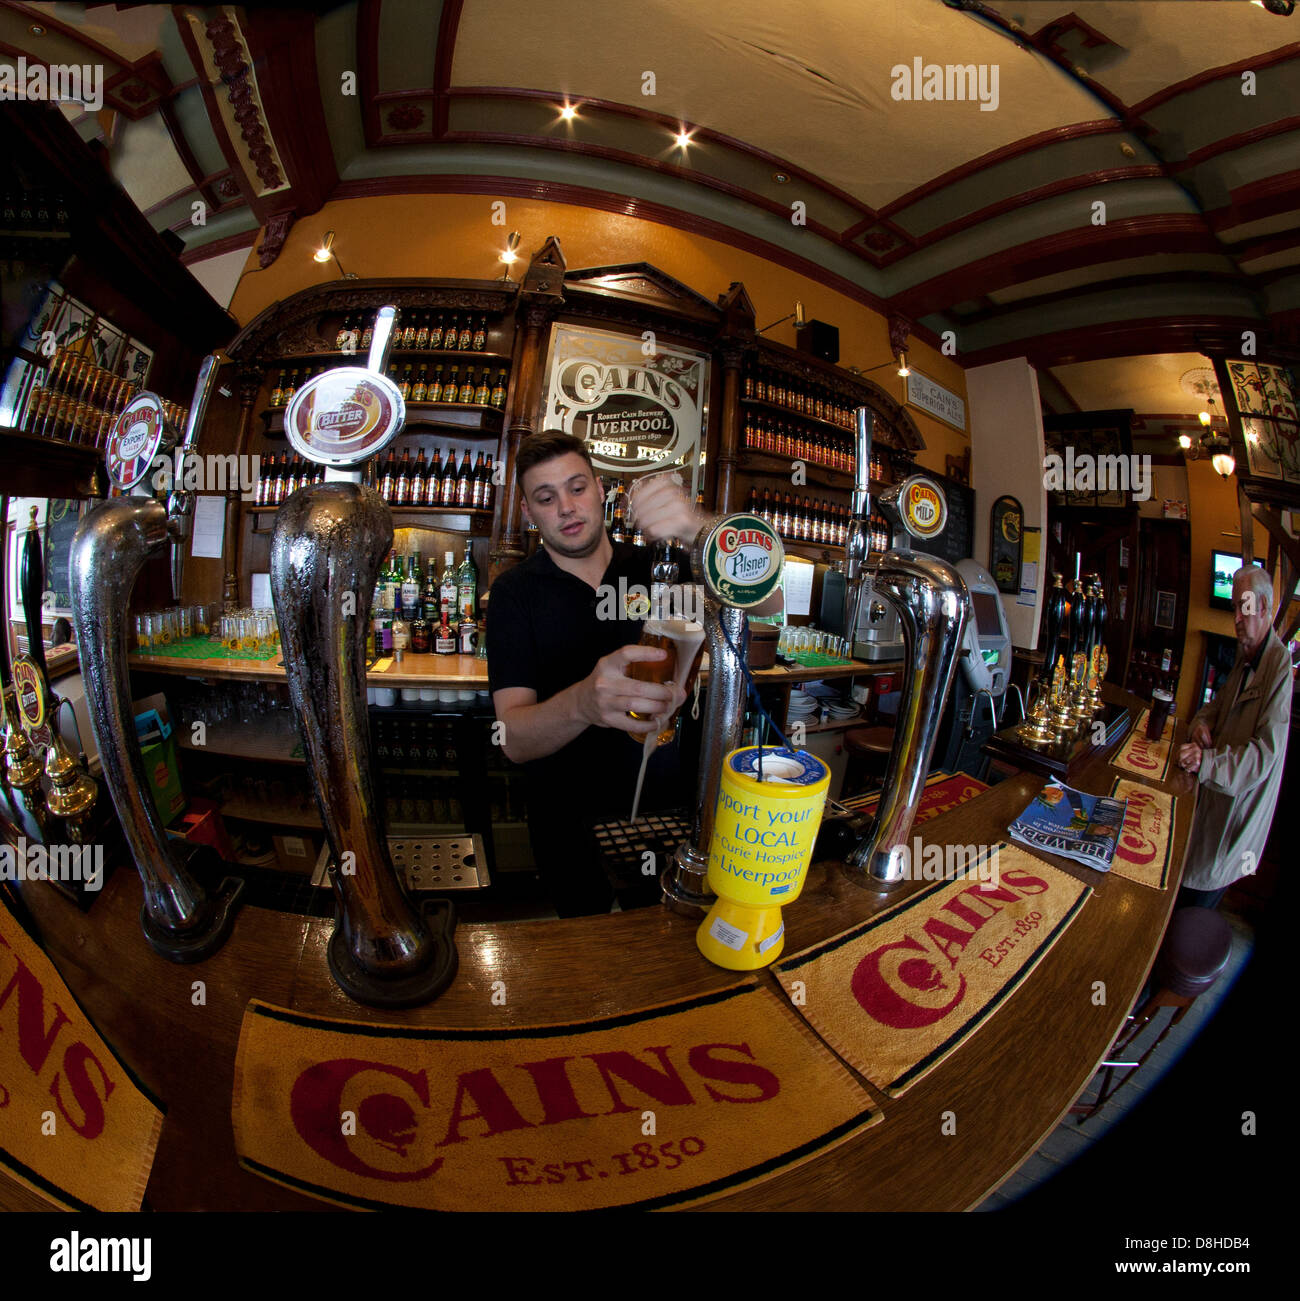 Fisheye shot of Cains Brewery Tap Liverpool , Pulling a pint of English ale - Stock Image